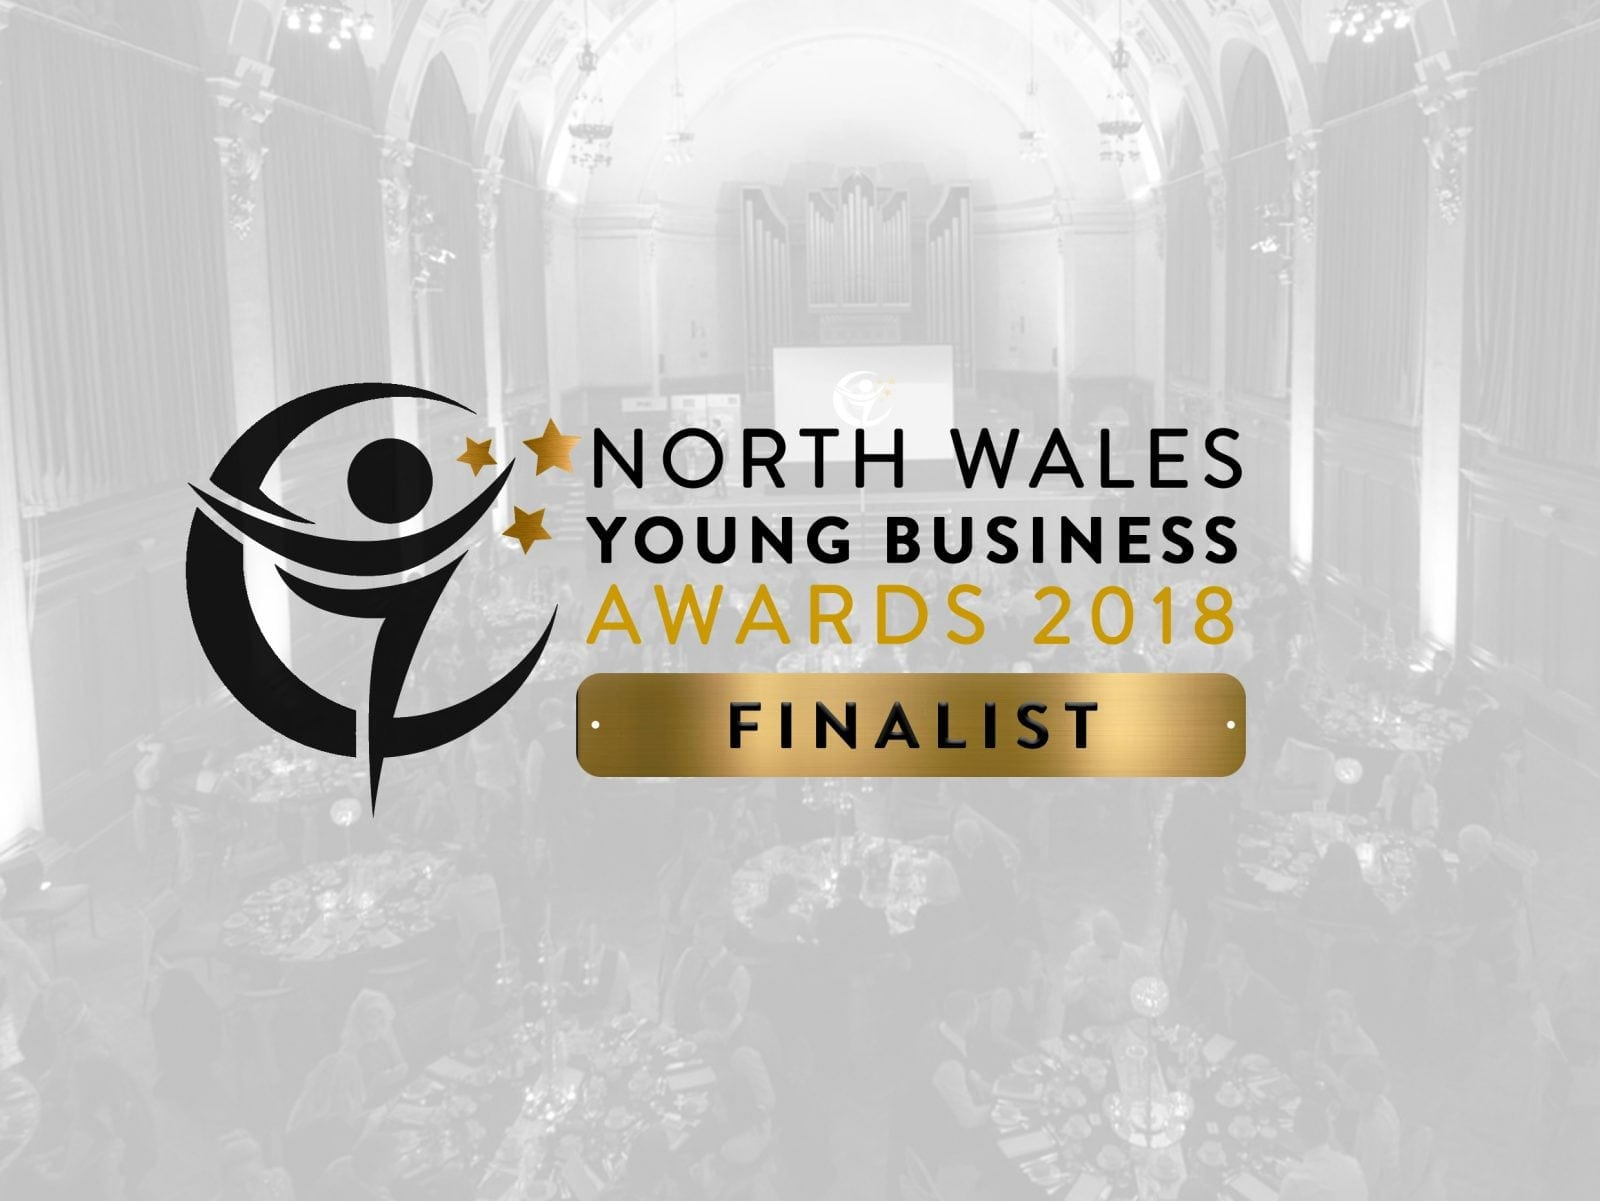 Finalists: North Wales Young Business Awards